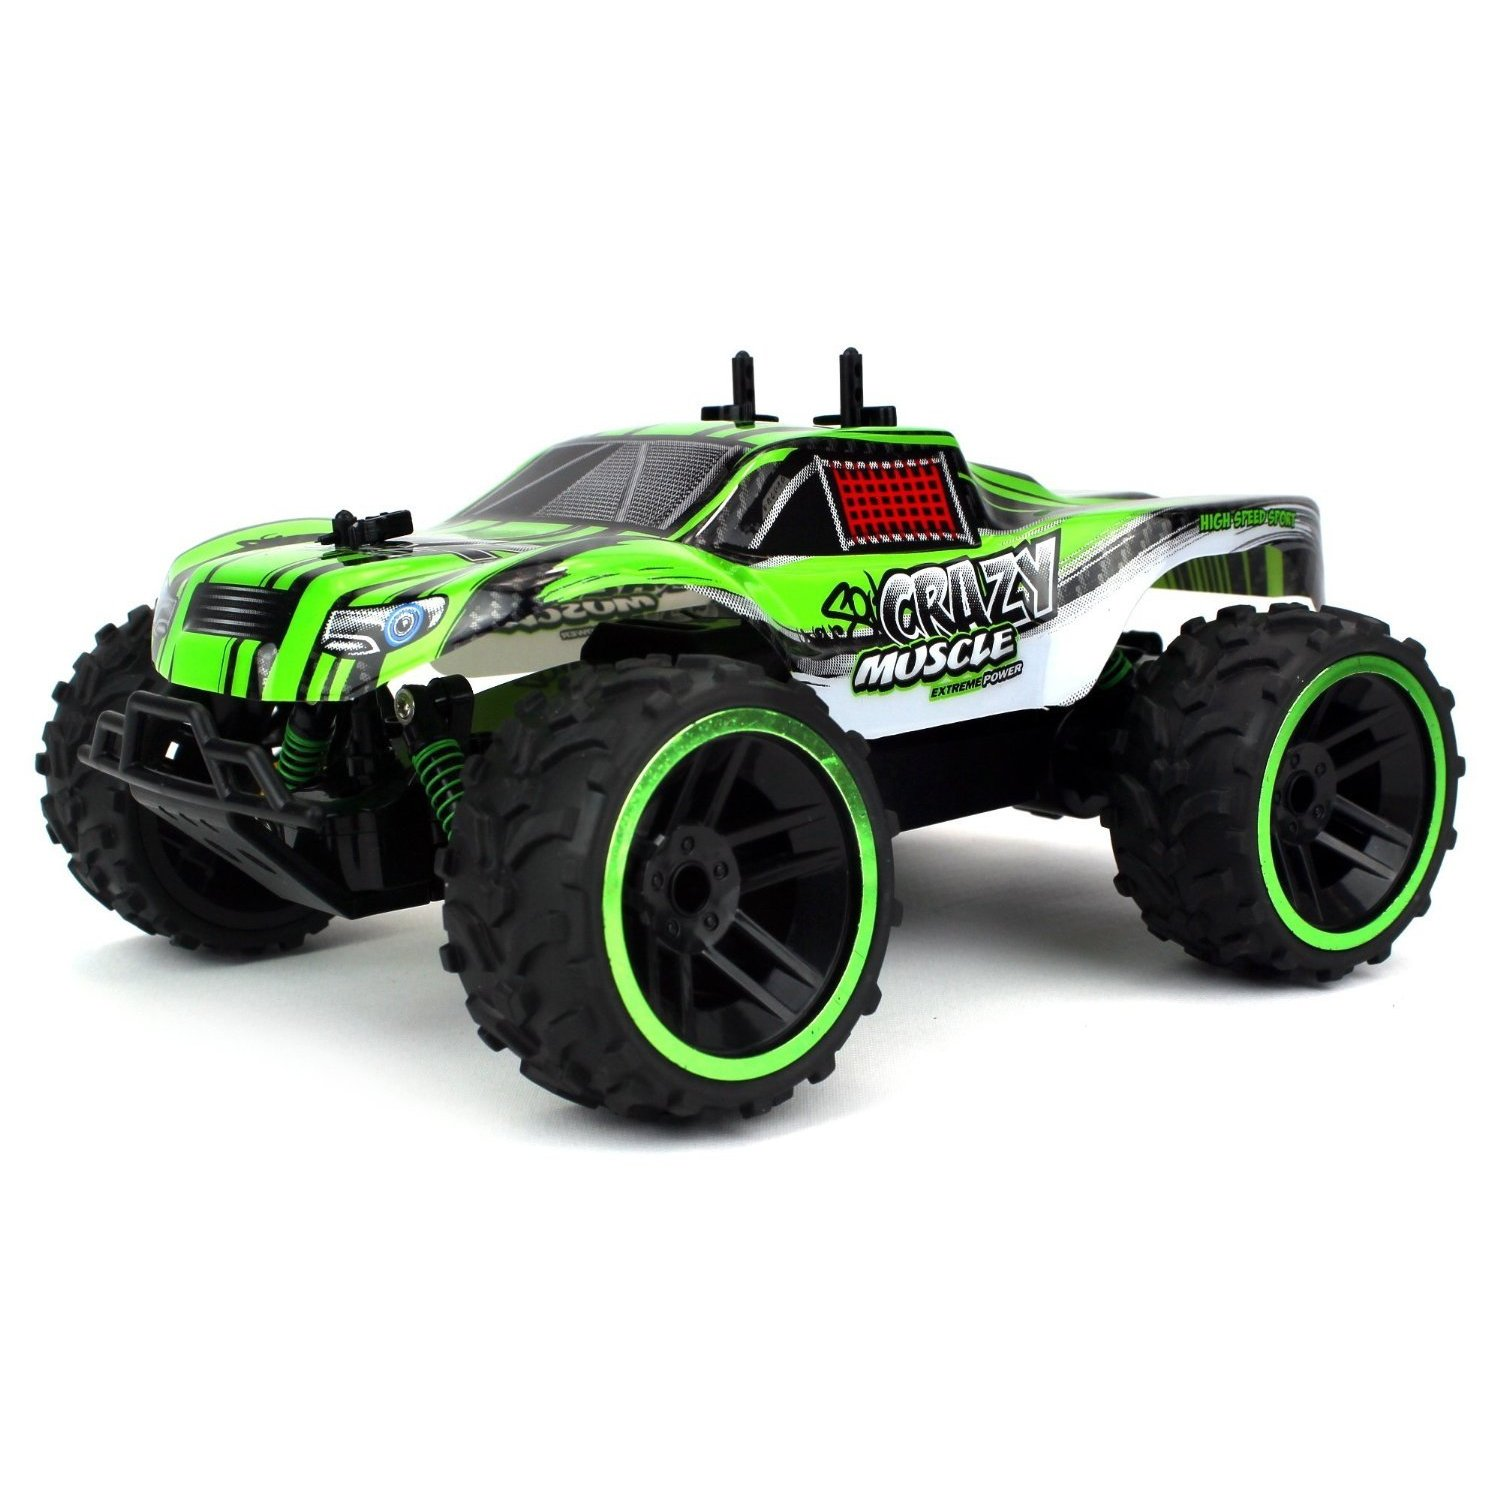 Velocity Toys Buggy Crazy Muscle Remote Control RC Truck Truggy 2 4 GHz PRO  System 1:16 Scale Size (Colors May Vary)